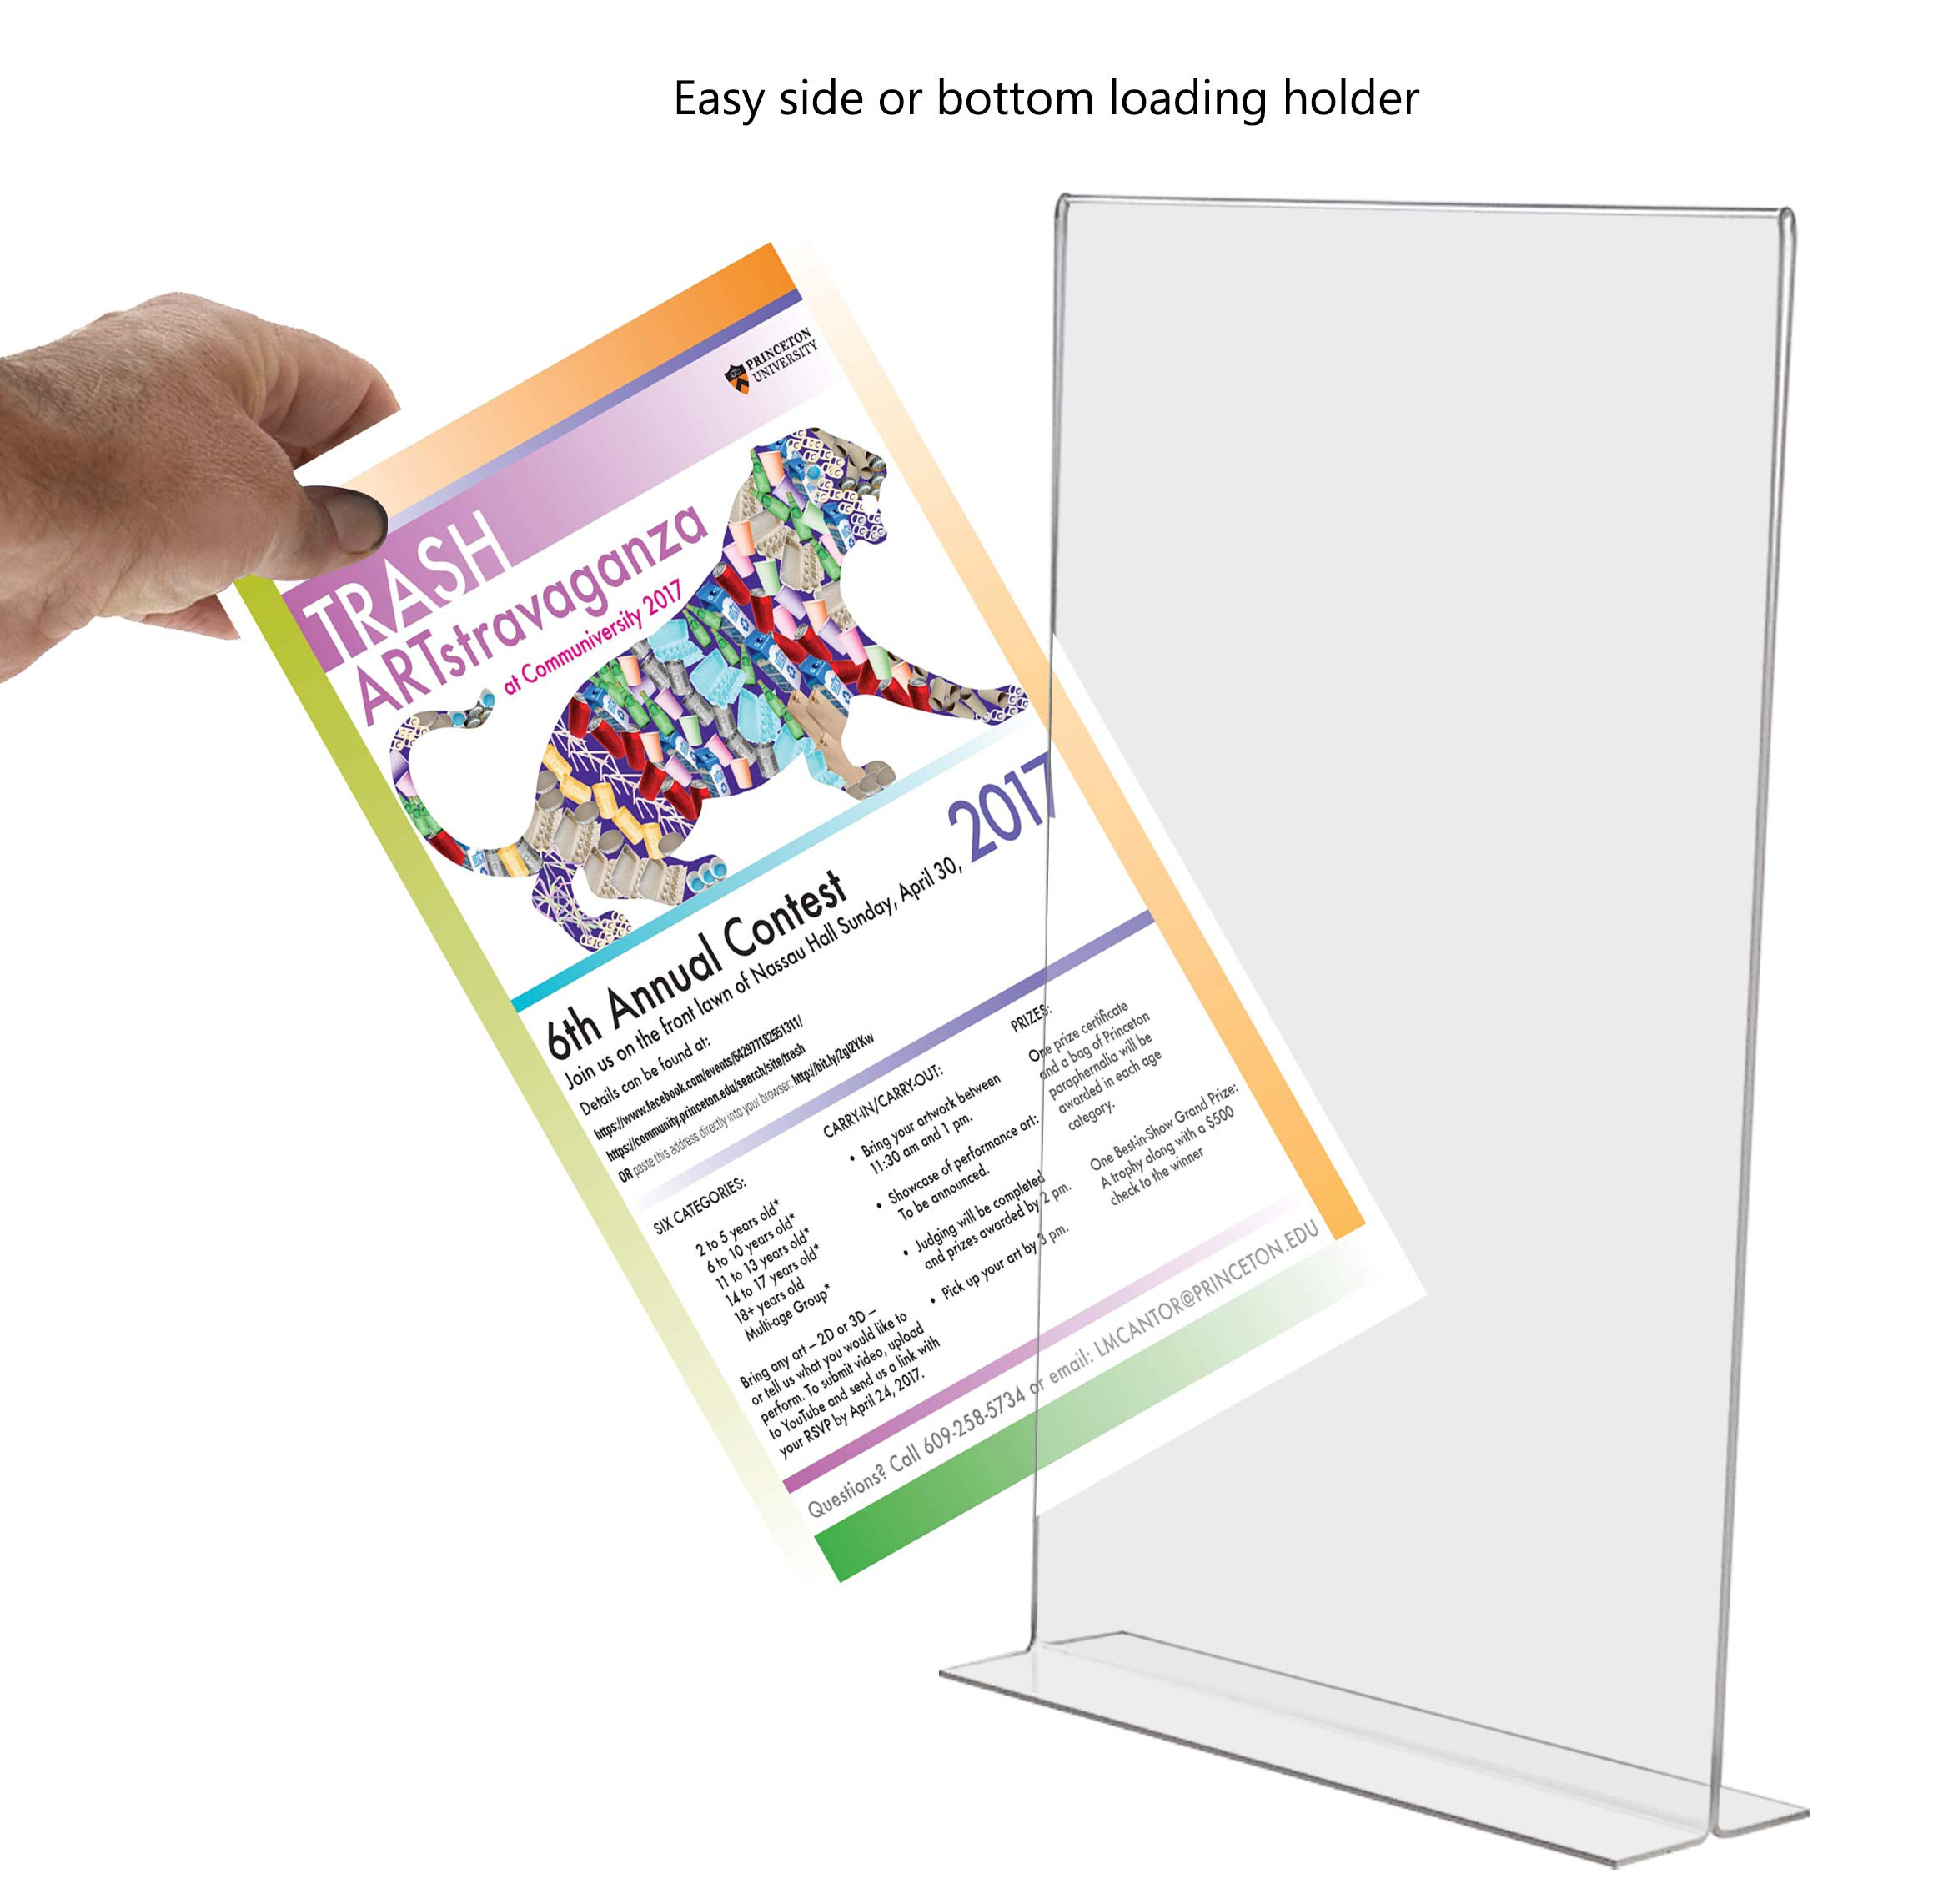 Marketing Holders Literature Flyer Poster Frame Letter Notice Menu Pricing Deli Table Tent Countertop Expo Event Sign Holder Display Stand Double Sided Bottom Loading 11''w x 17''h Pack of 4 by Marketing Holders (Image #4)